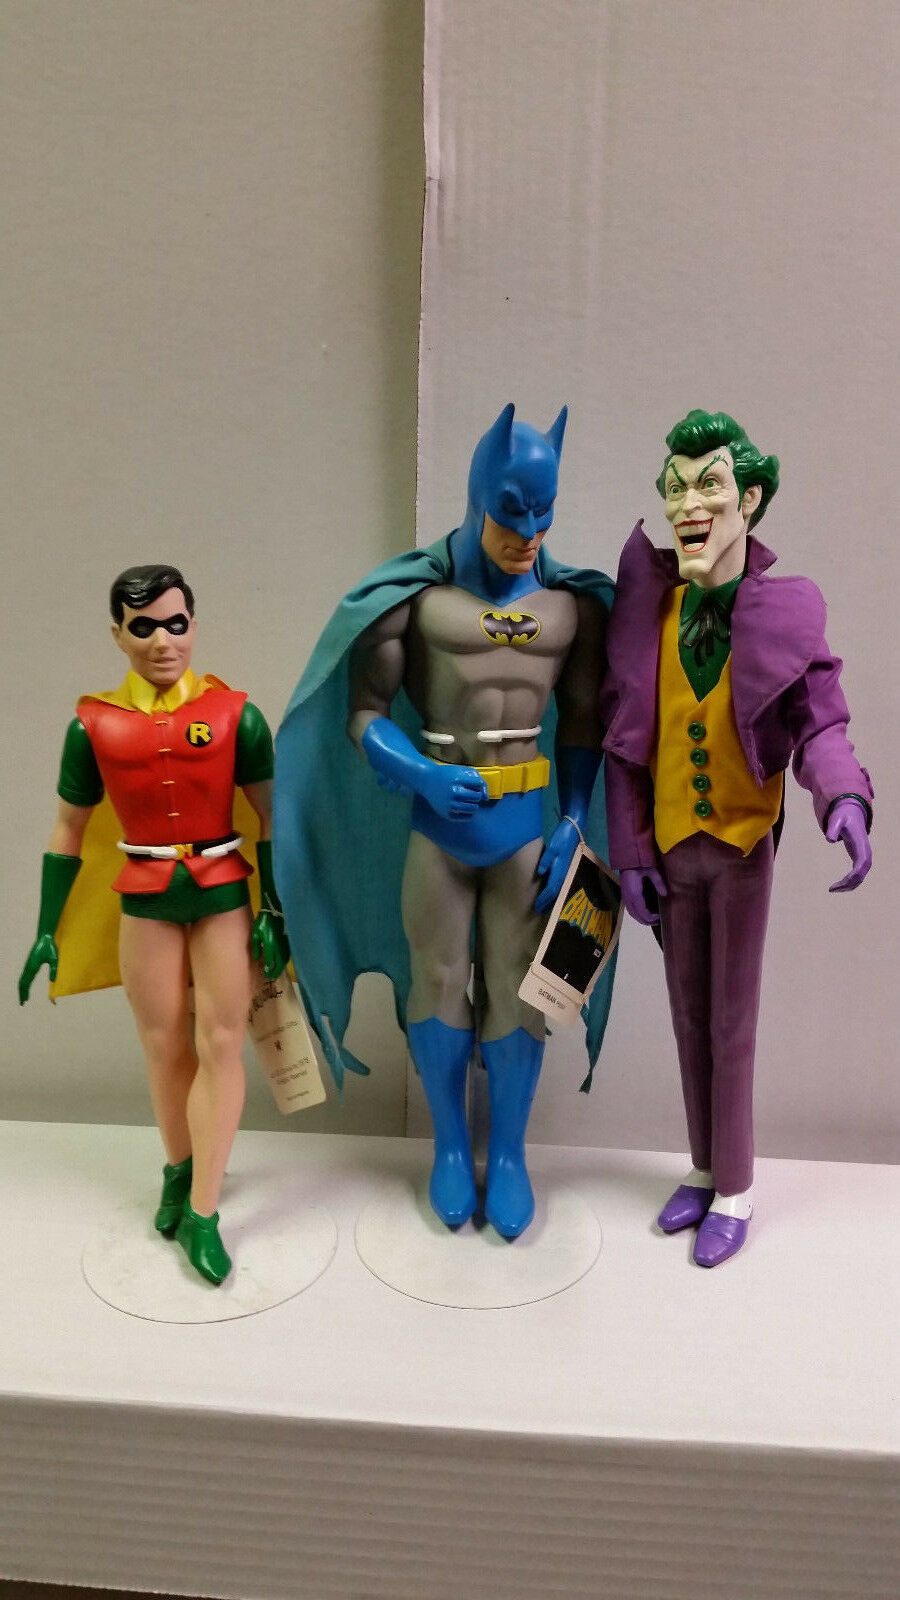 Batman Robin and Joker from Presents Hamiliton Gifts 1976 and 1982